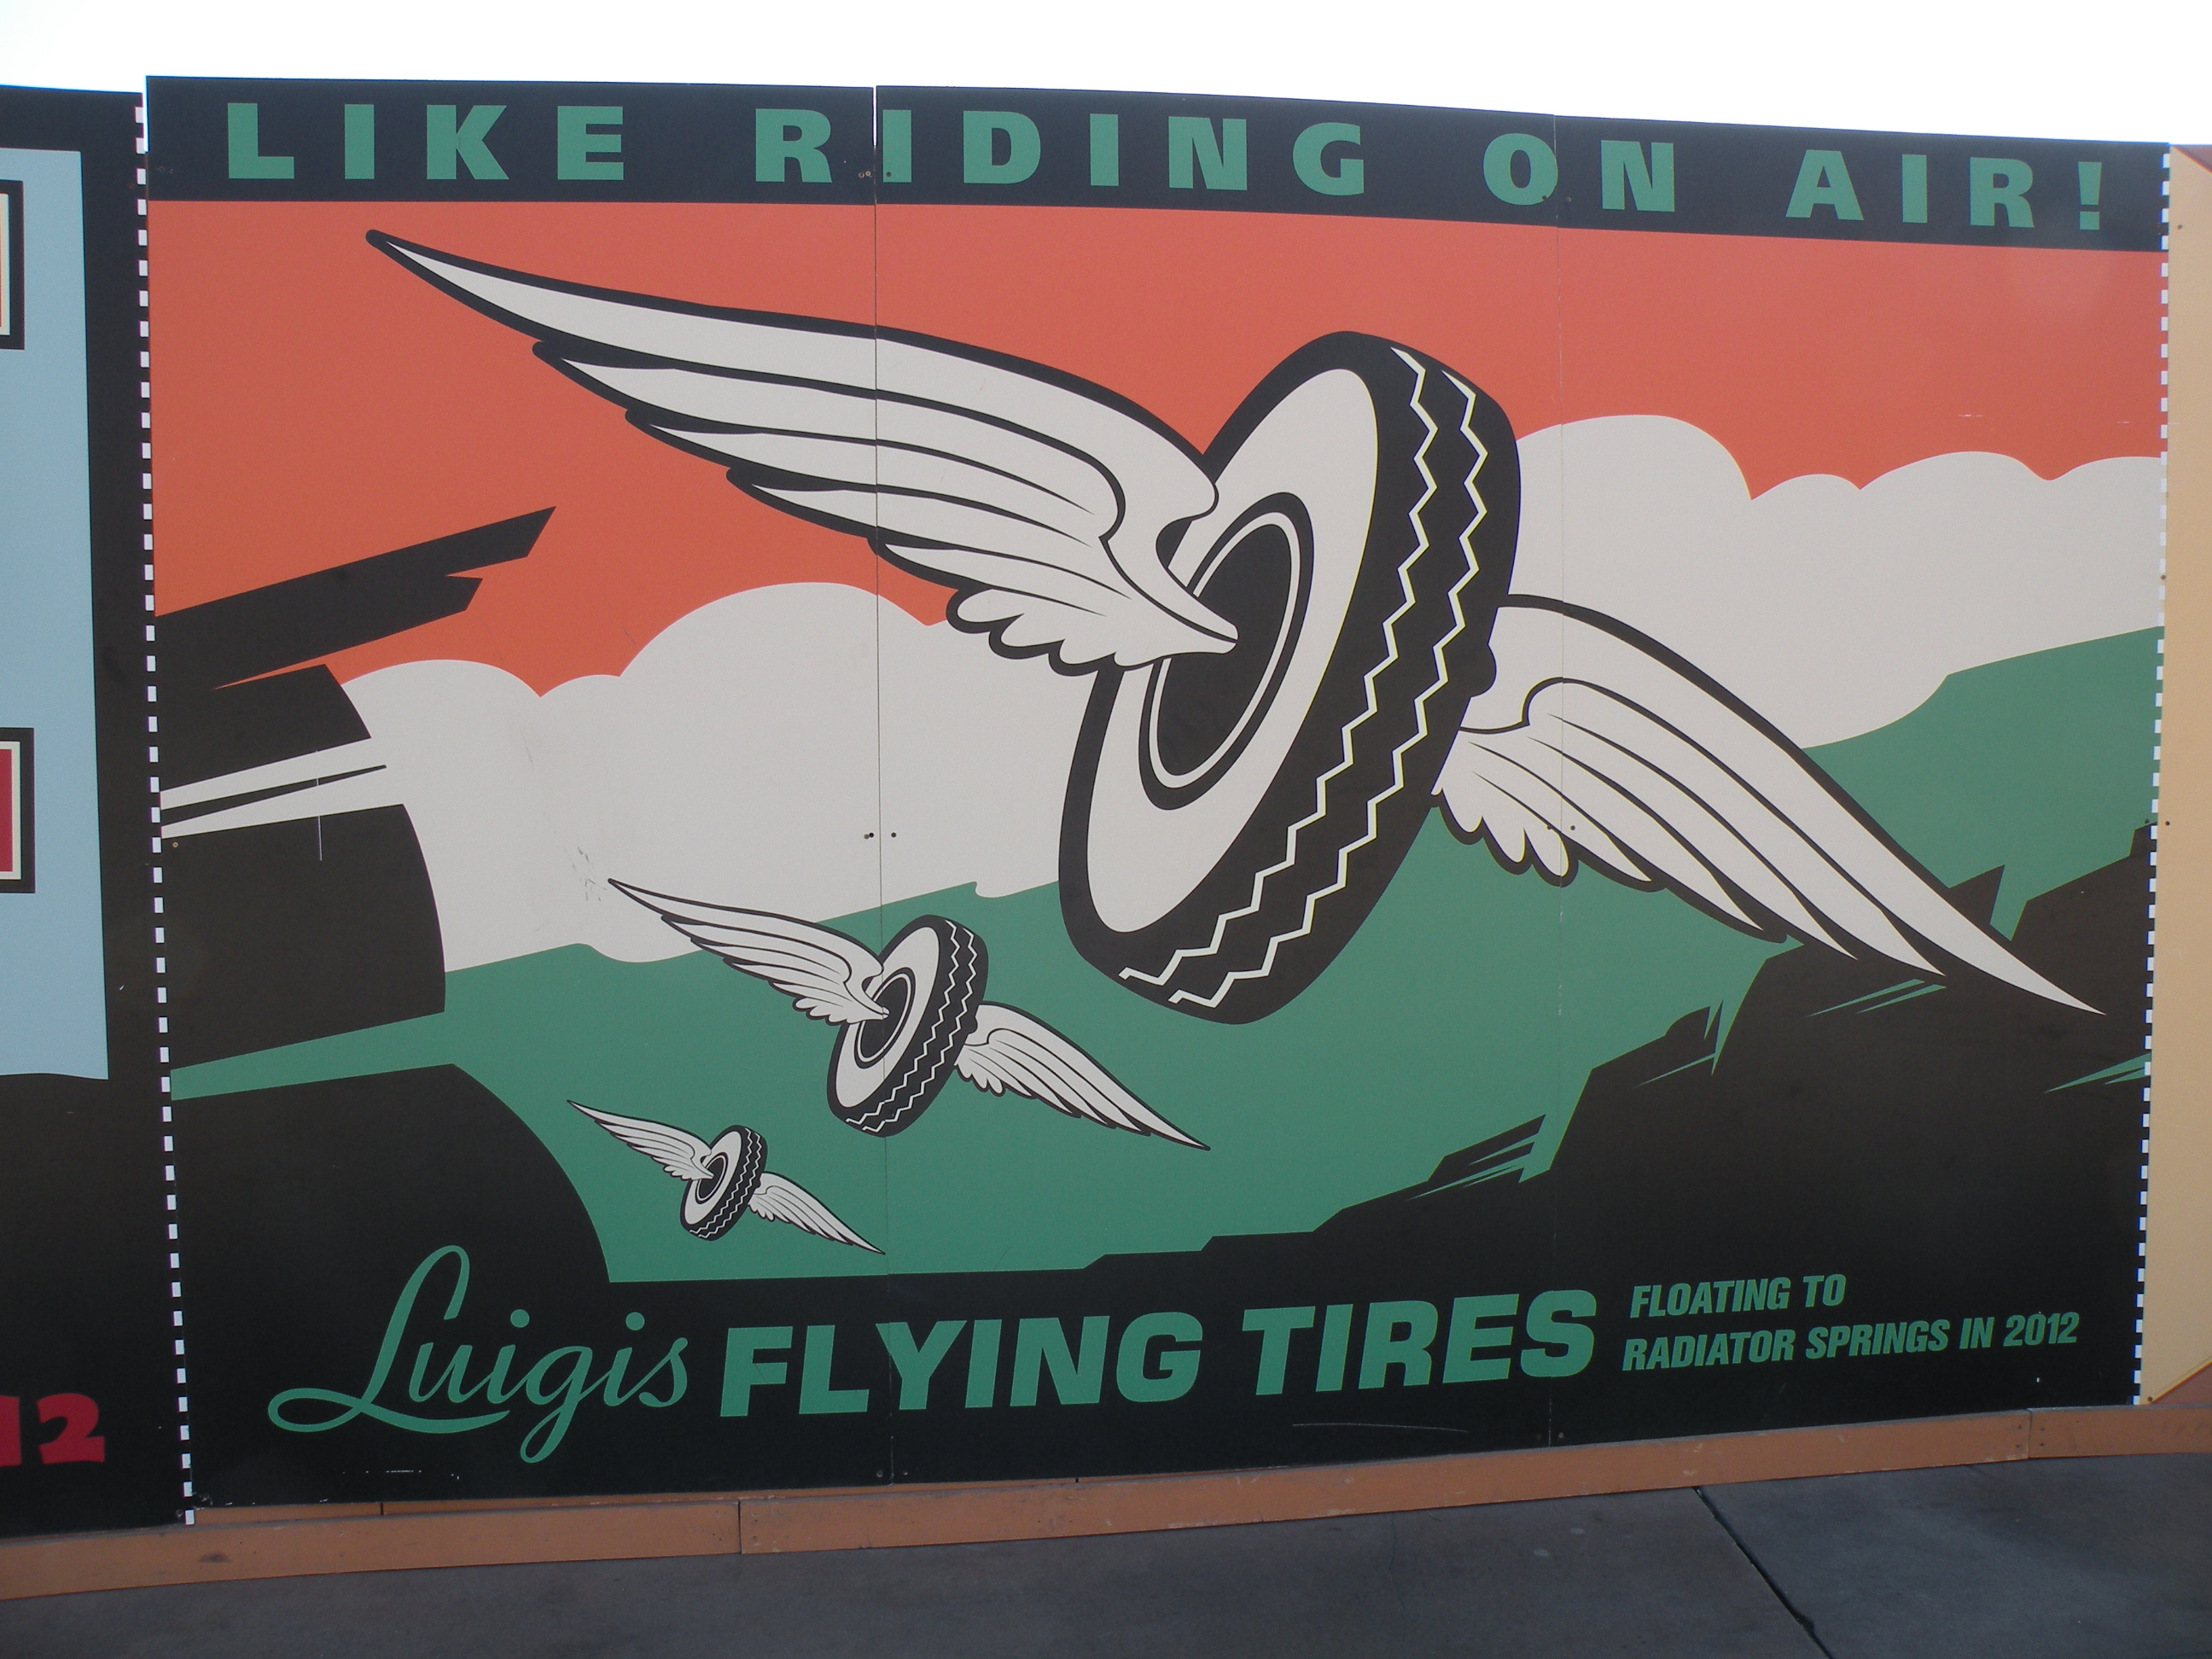 Luigi's Flying Tires